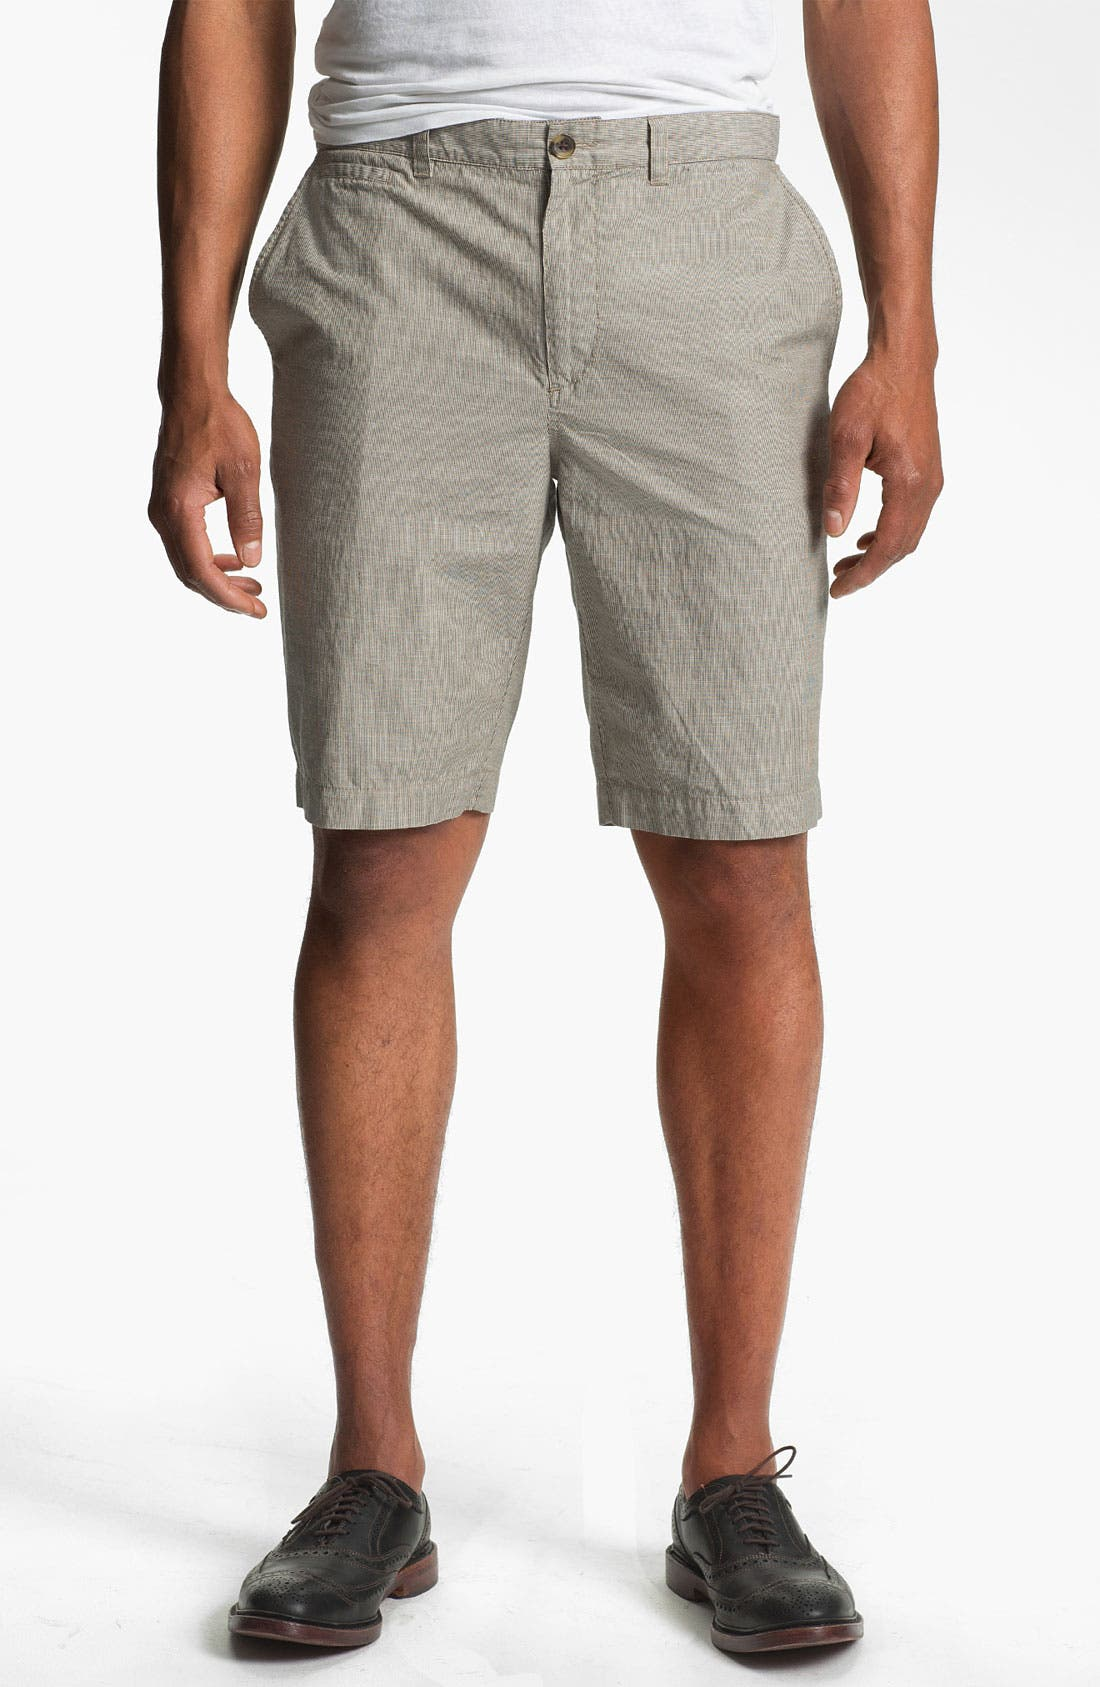 Alternate Image 1 Selected - Wallin & Bros. 'Lanspur' Flat Front Shorts